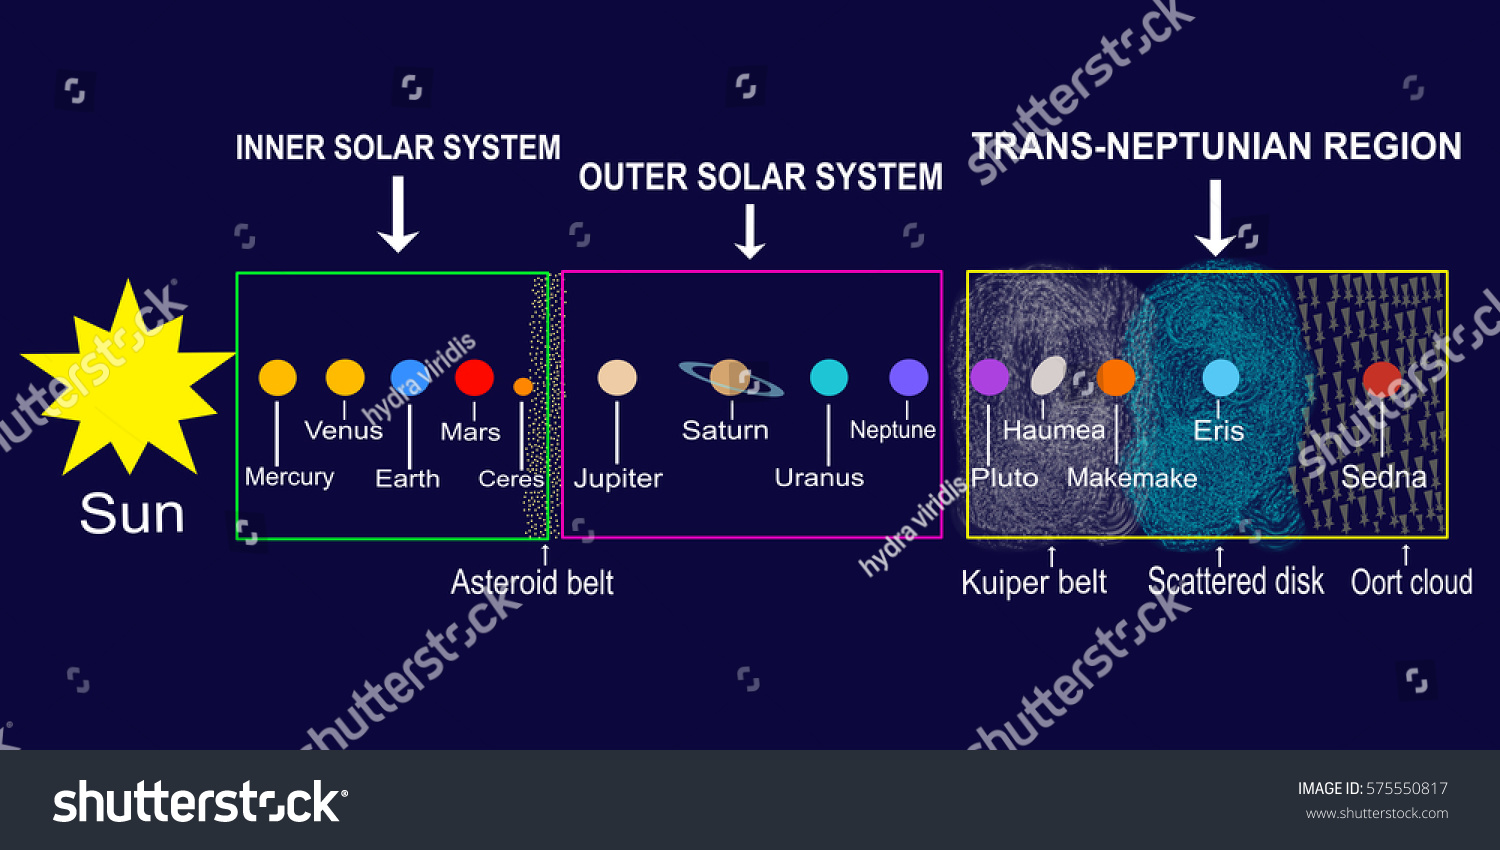 Solar system planets dwarf ones their stock illustration 575550817 solar system planets and dwarf ones with their positions in different zones of the space pooptronica Images